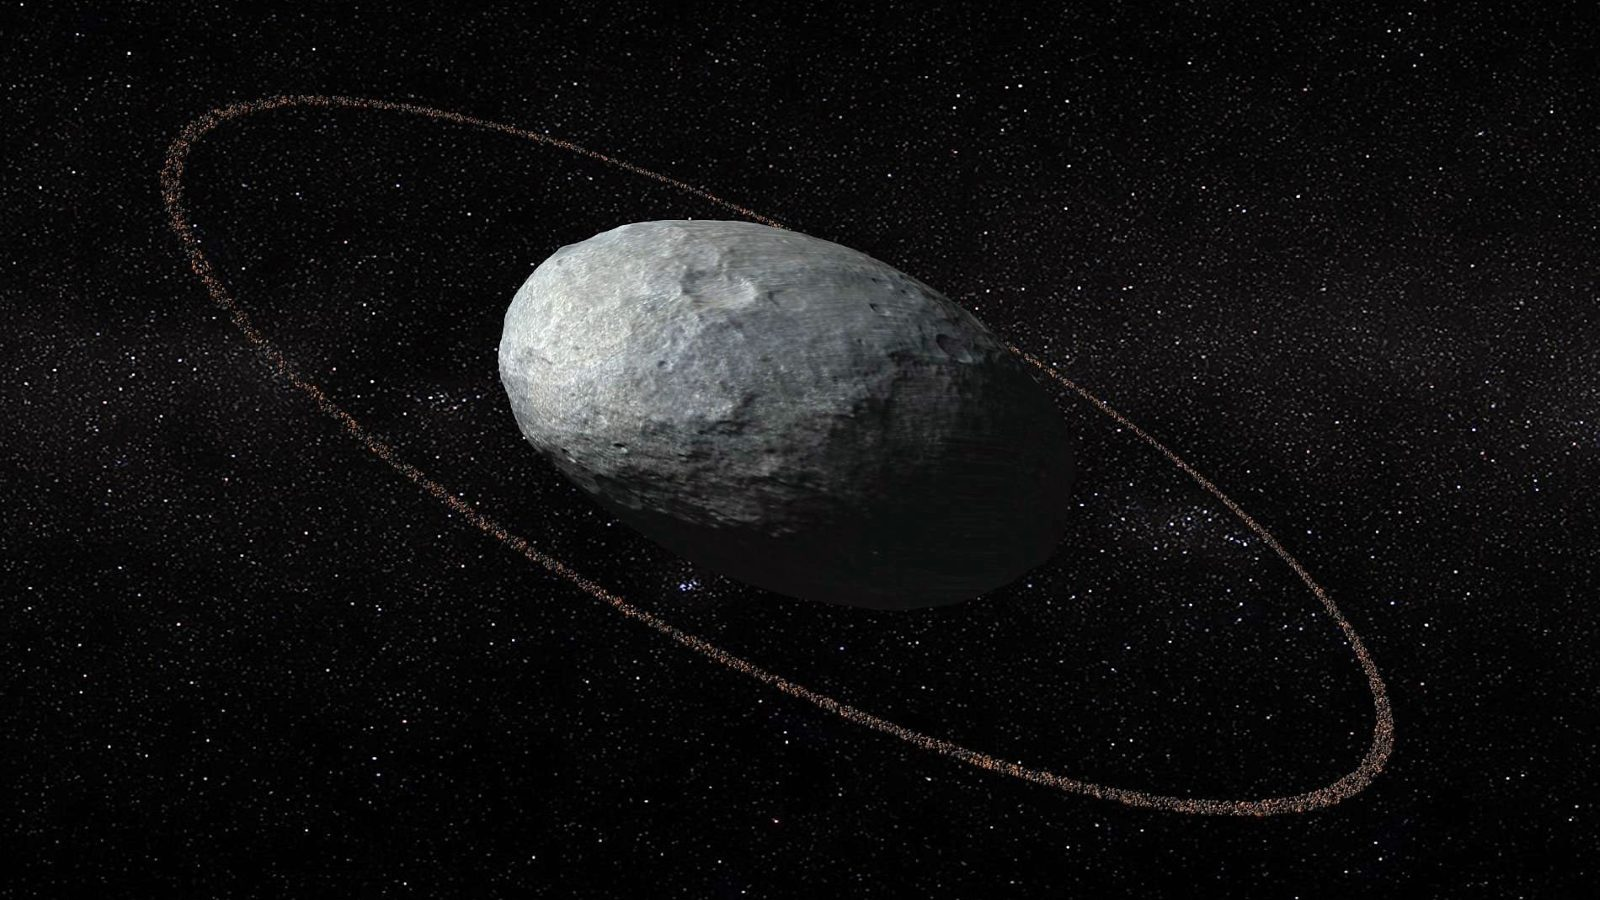 haumea dwarf planet orbit - photo #17